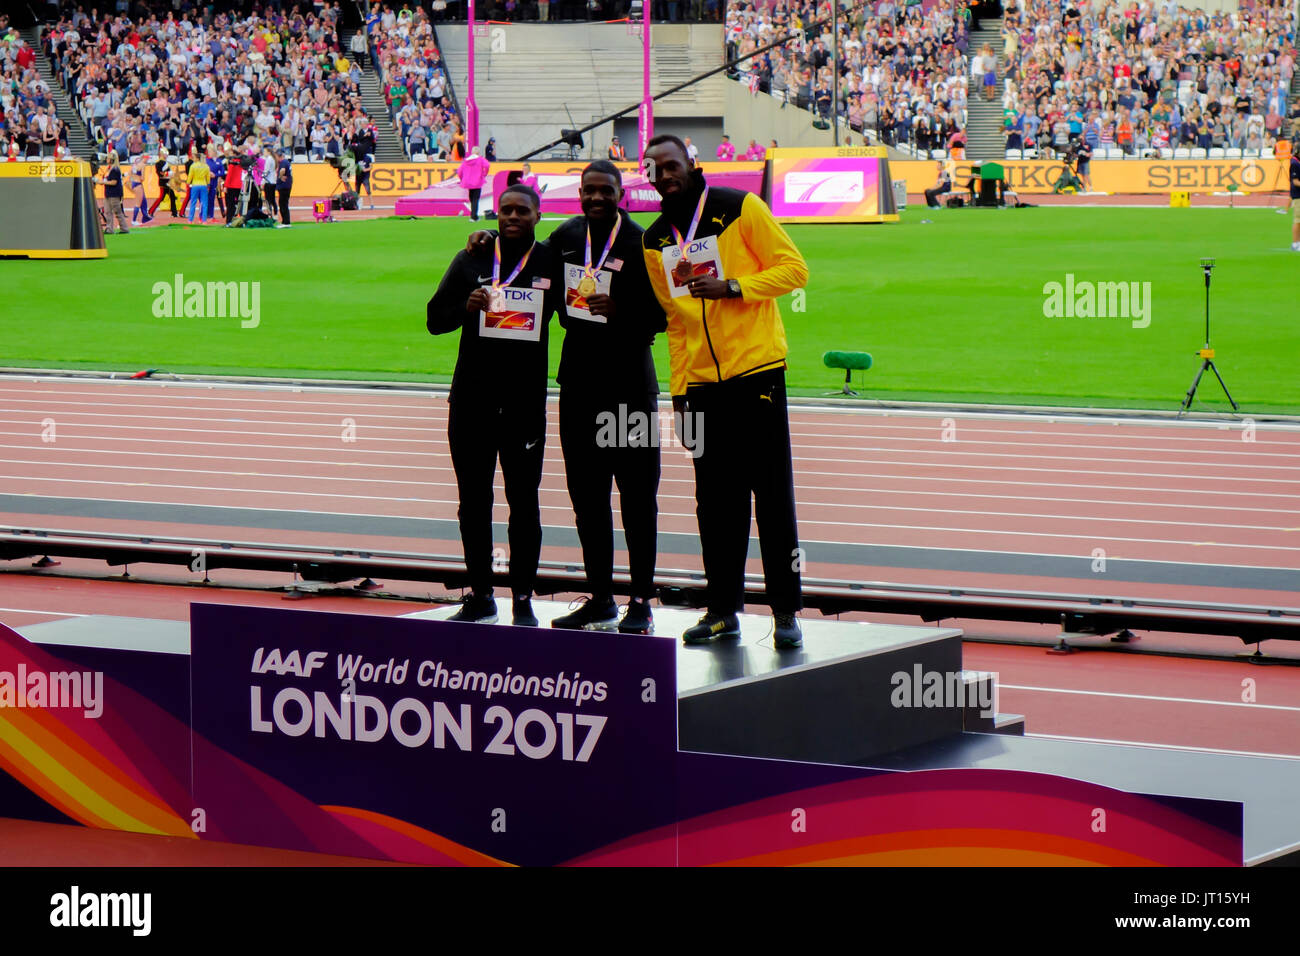 Men's 100m award ceremony at the London 2017 IAAF World Championships in London, UK, 06 August 2017. - Stock Image